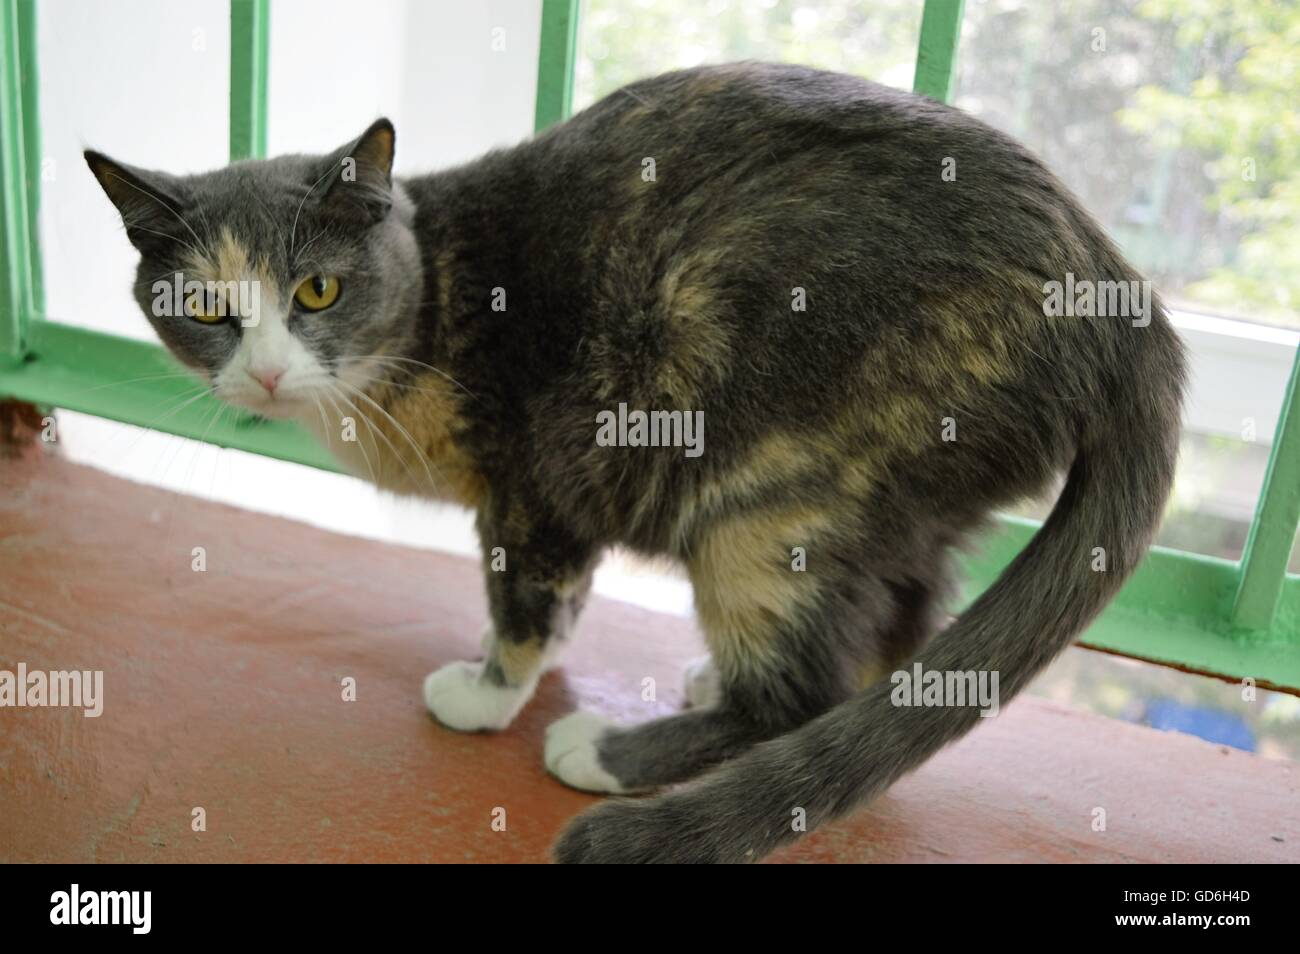 Dissatisfied gray cat - Stock Image